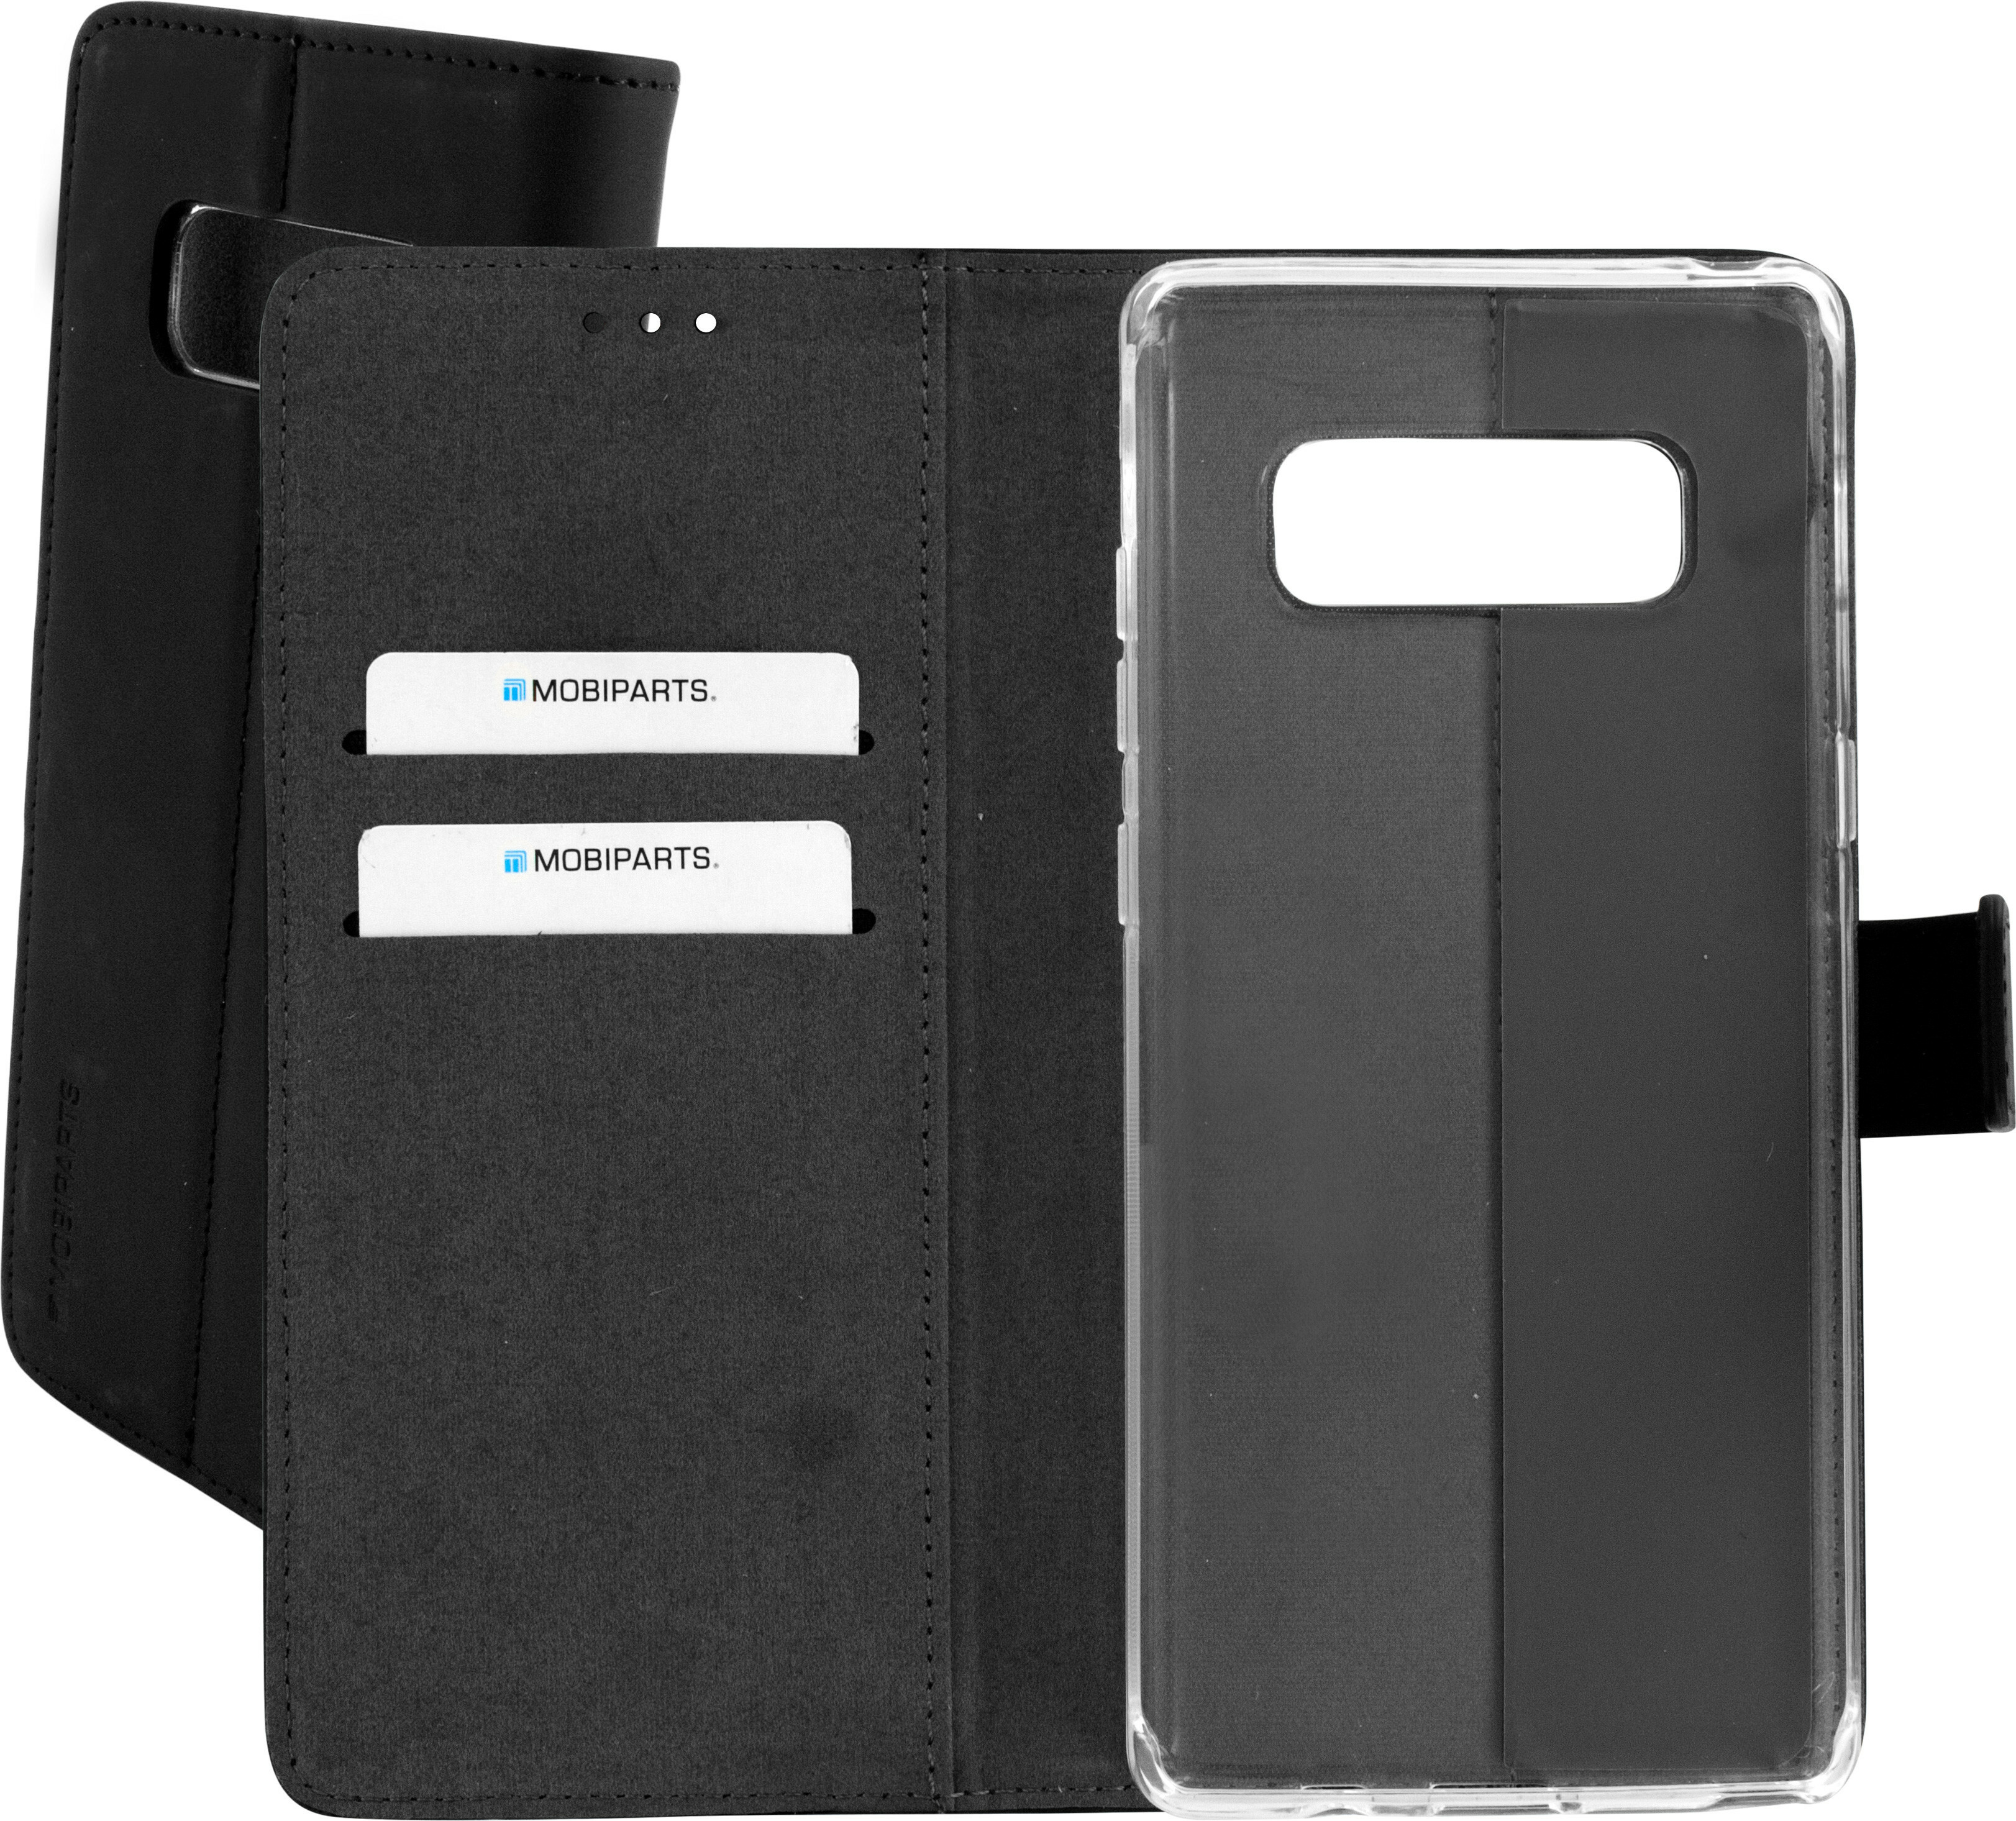 Mobiparts Premium Wallet TPU Case Samsung Galaxy Note 8 Black